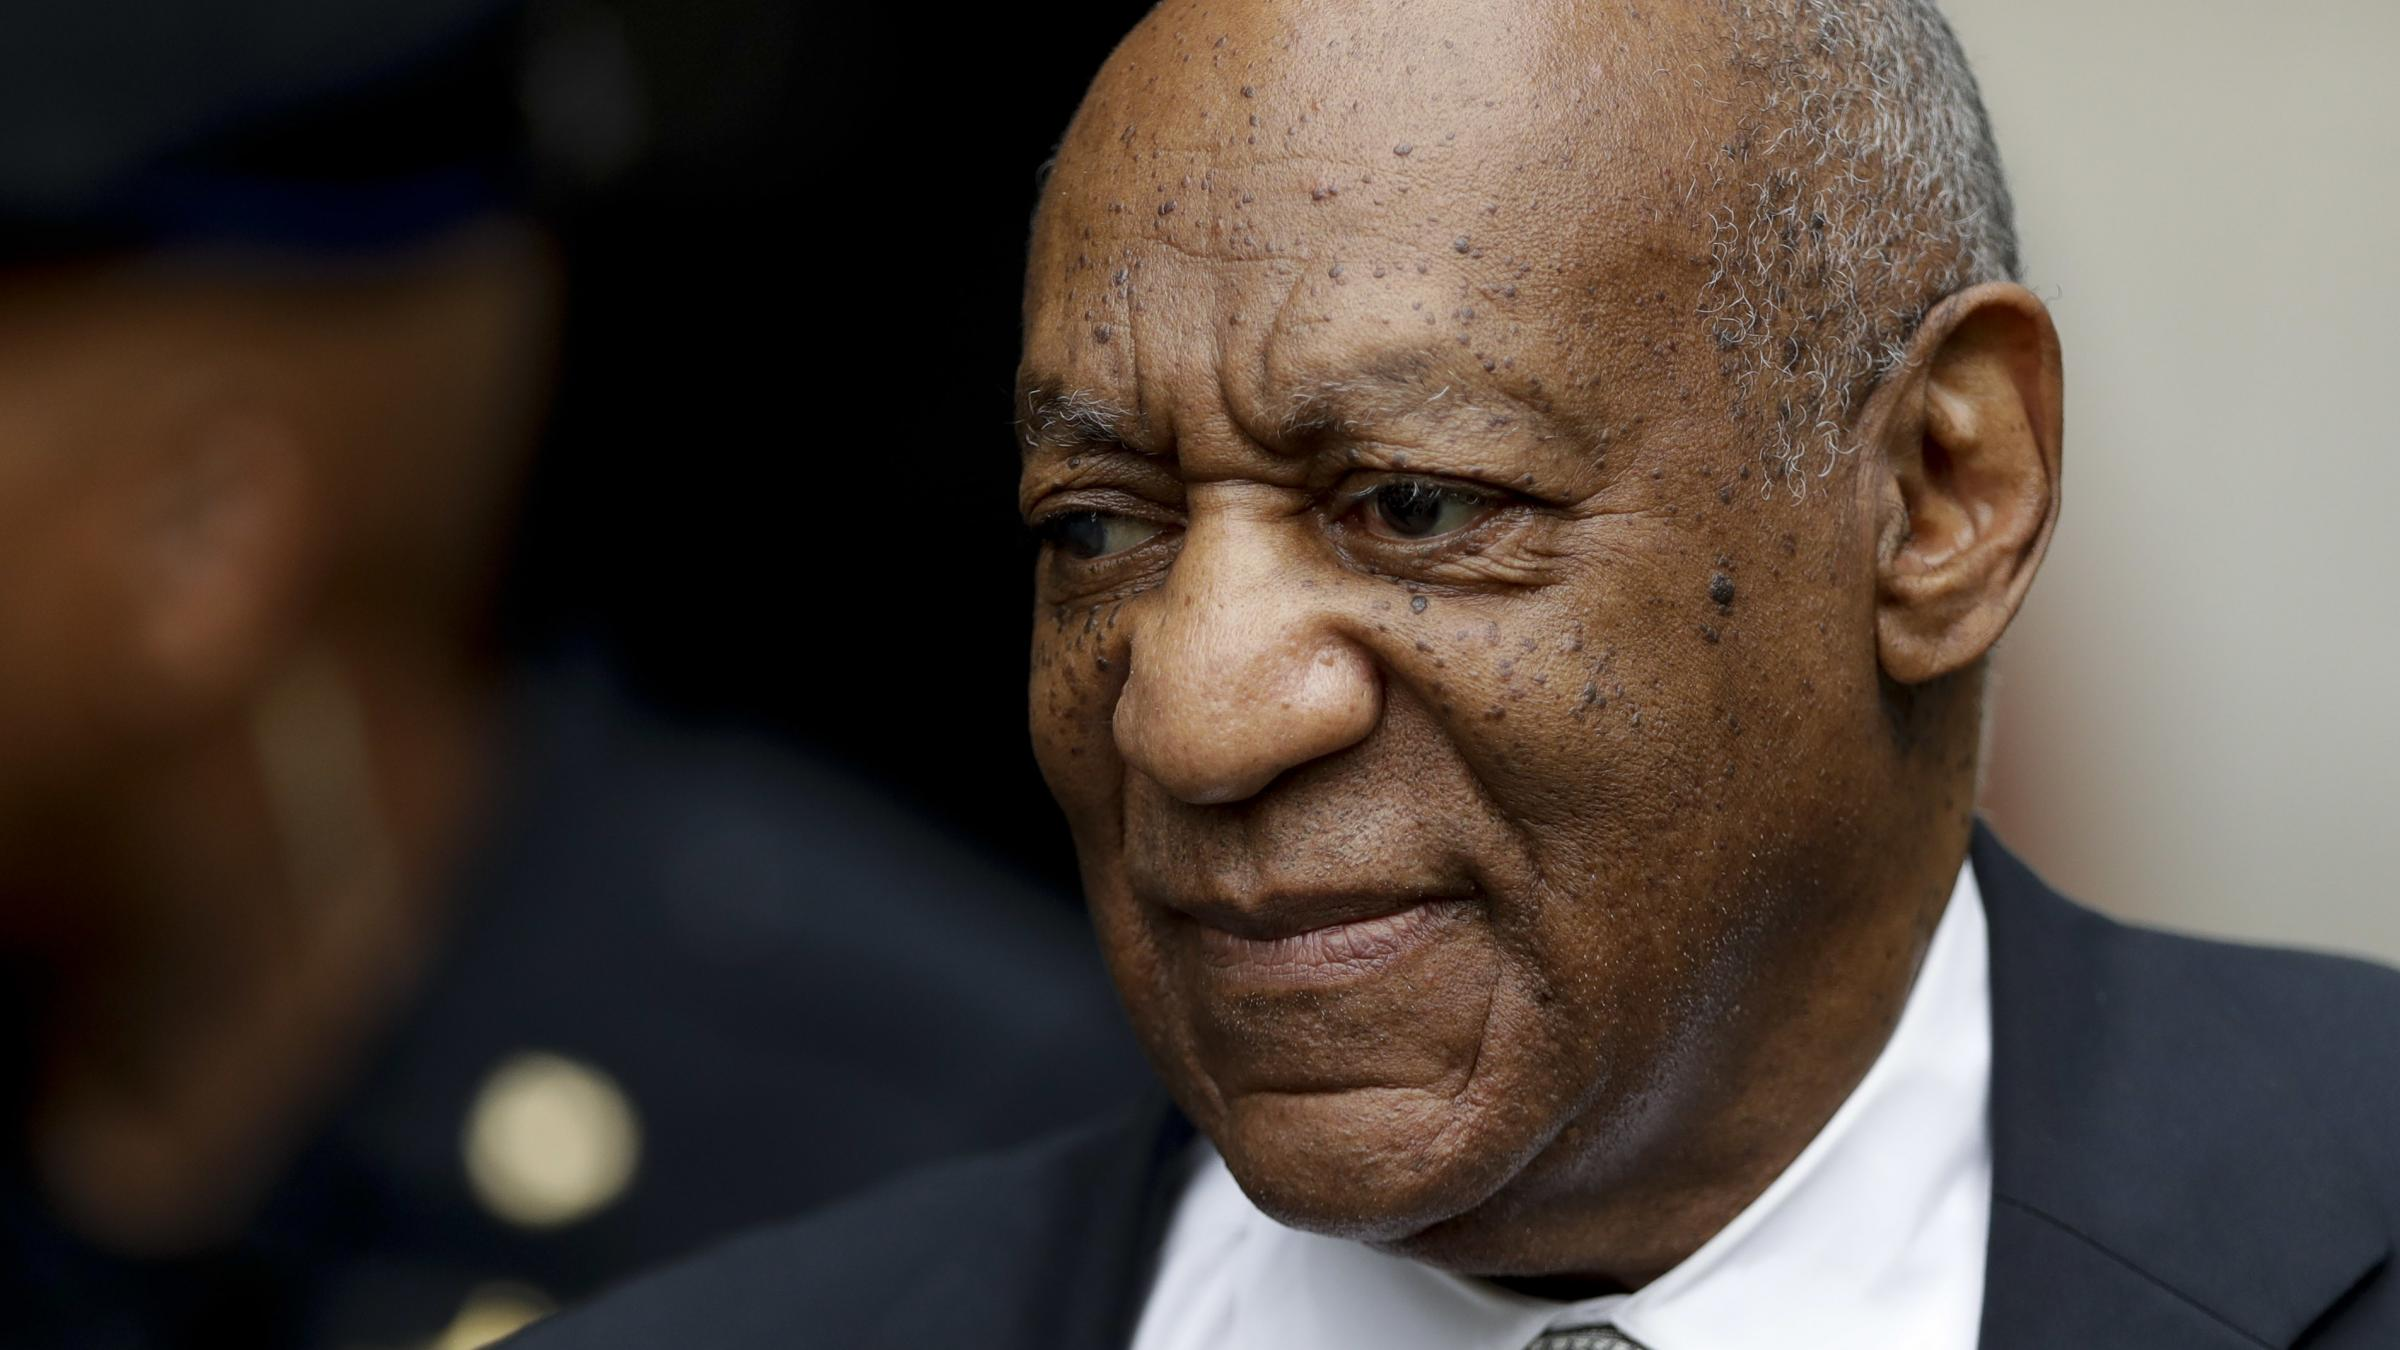 US Judge Declares Mistrial in Bill Cosby Case